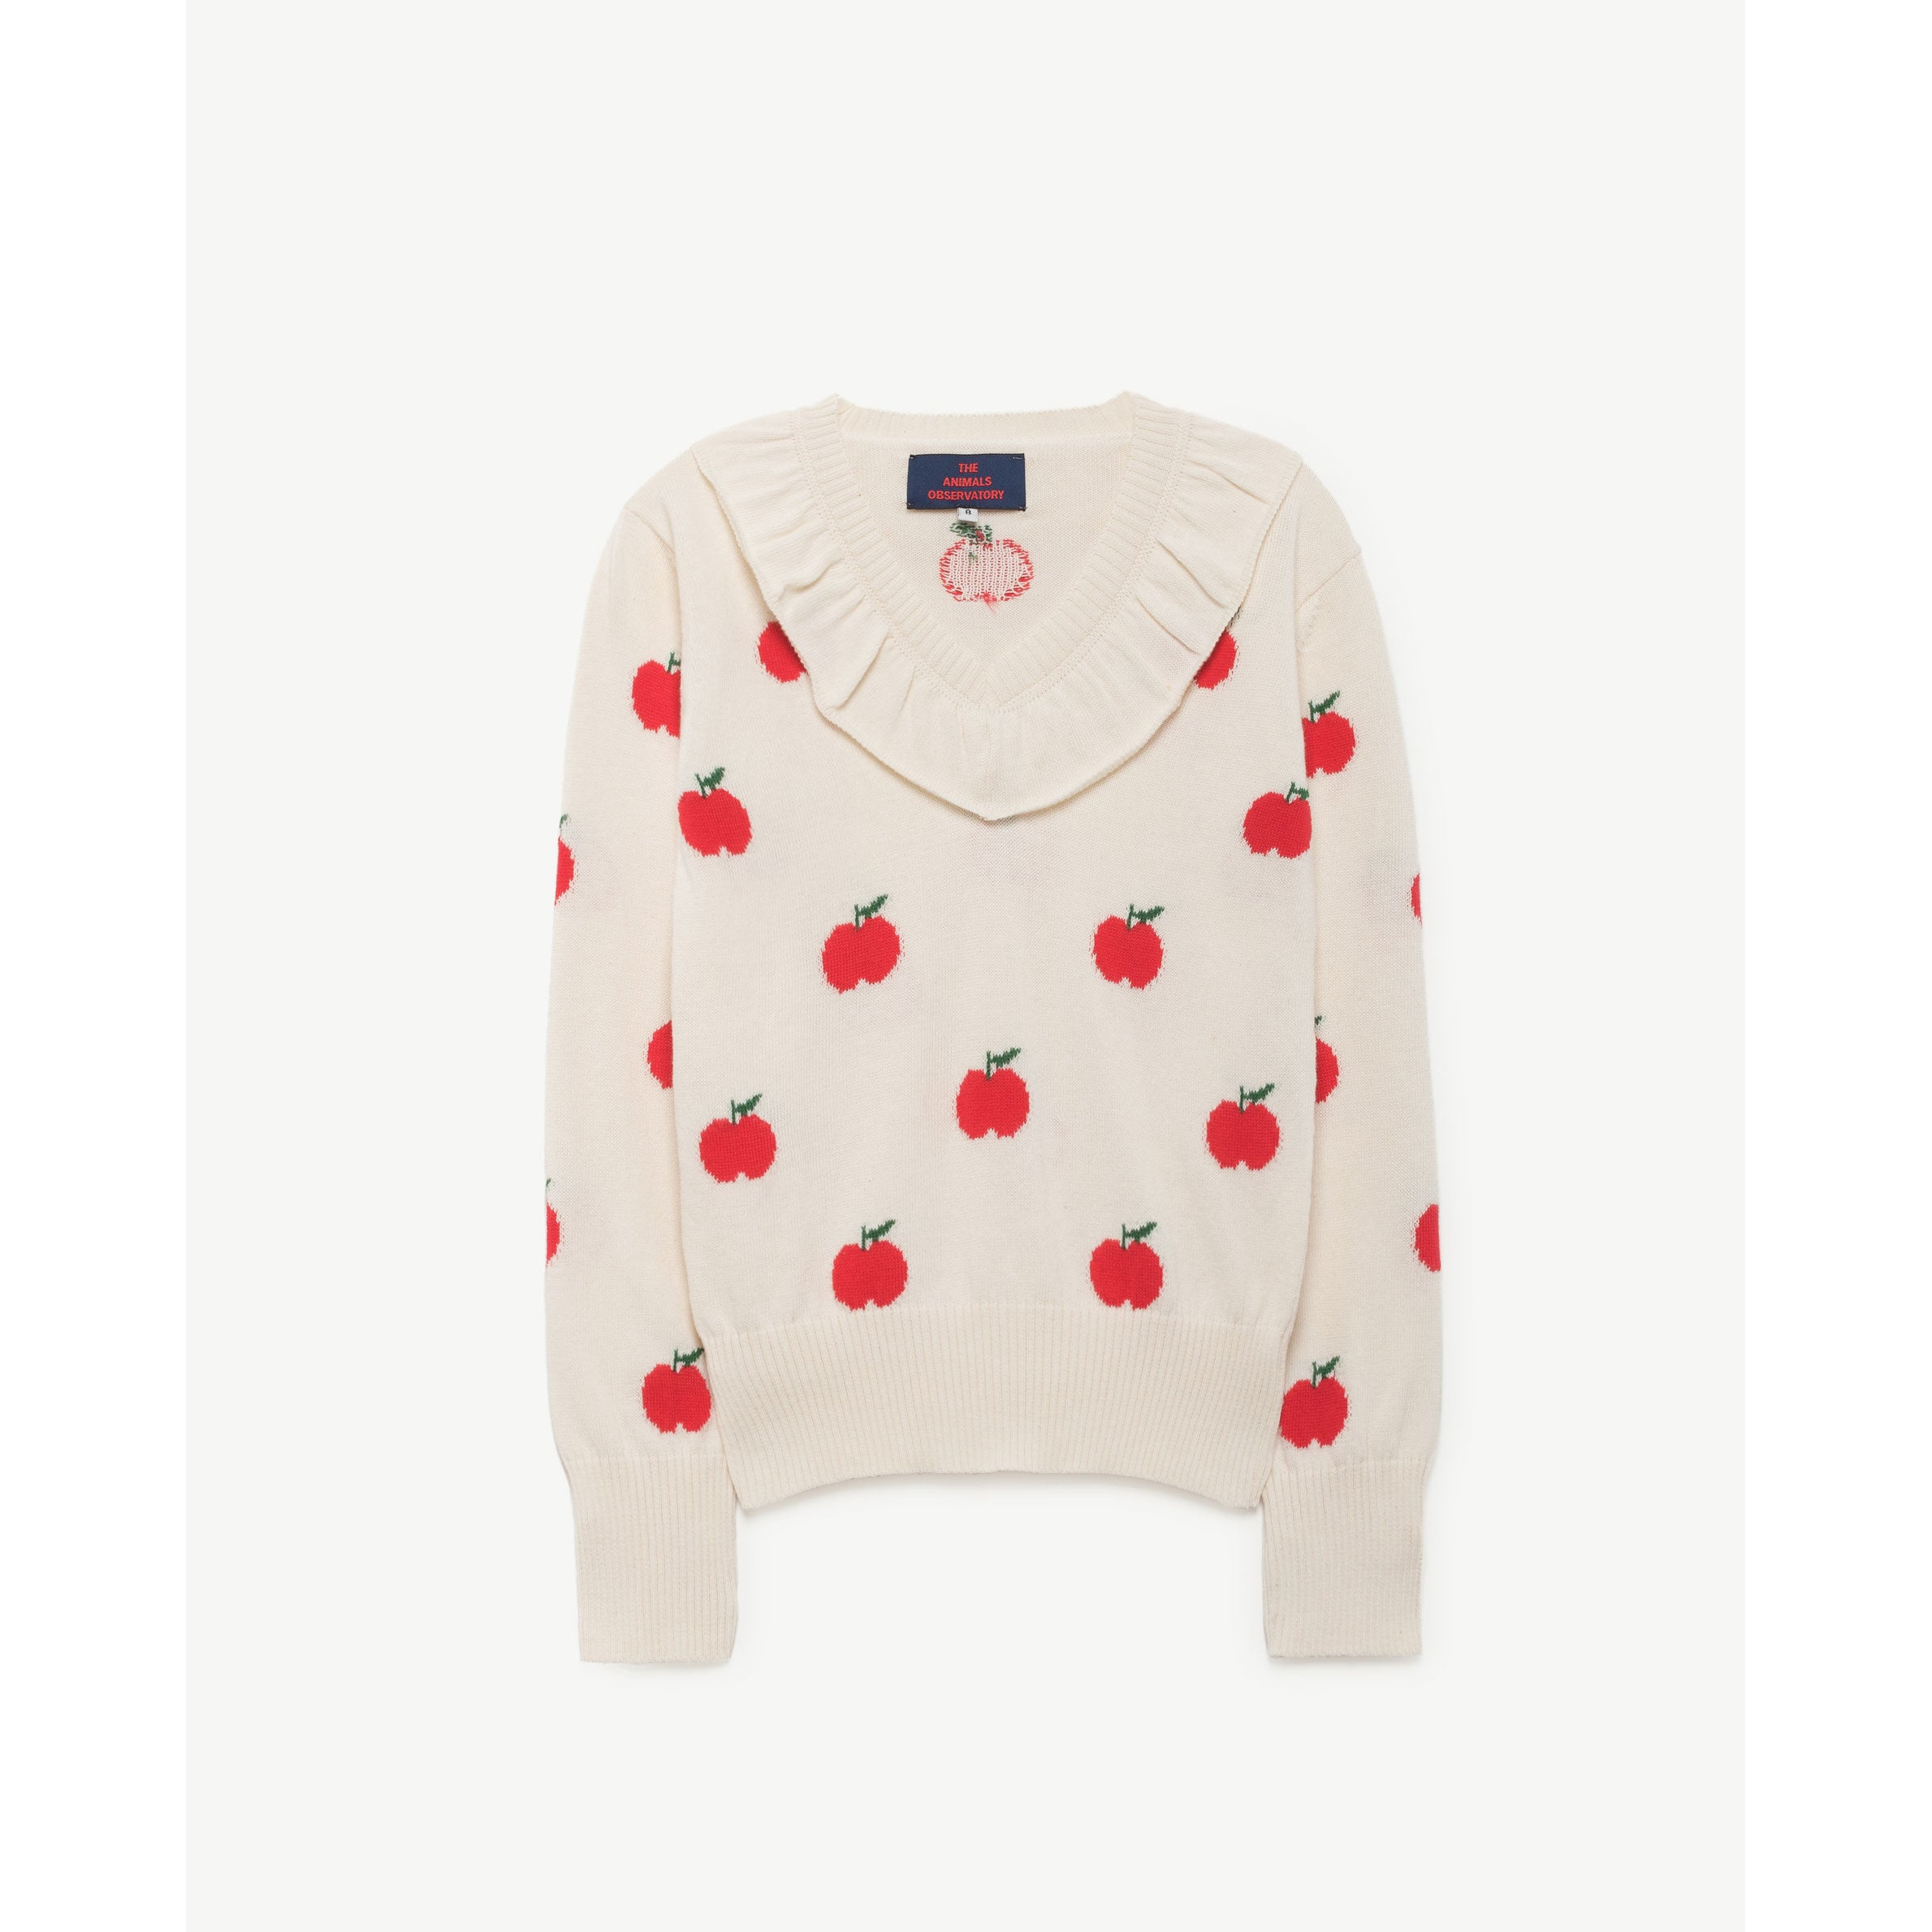 47ff5c9789a The Animals Observatory Red Apple Horsefly Sweater